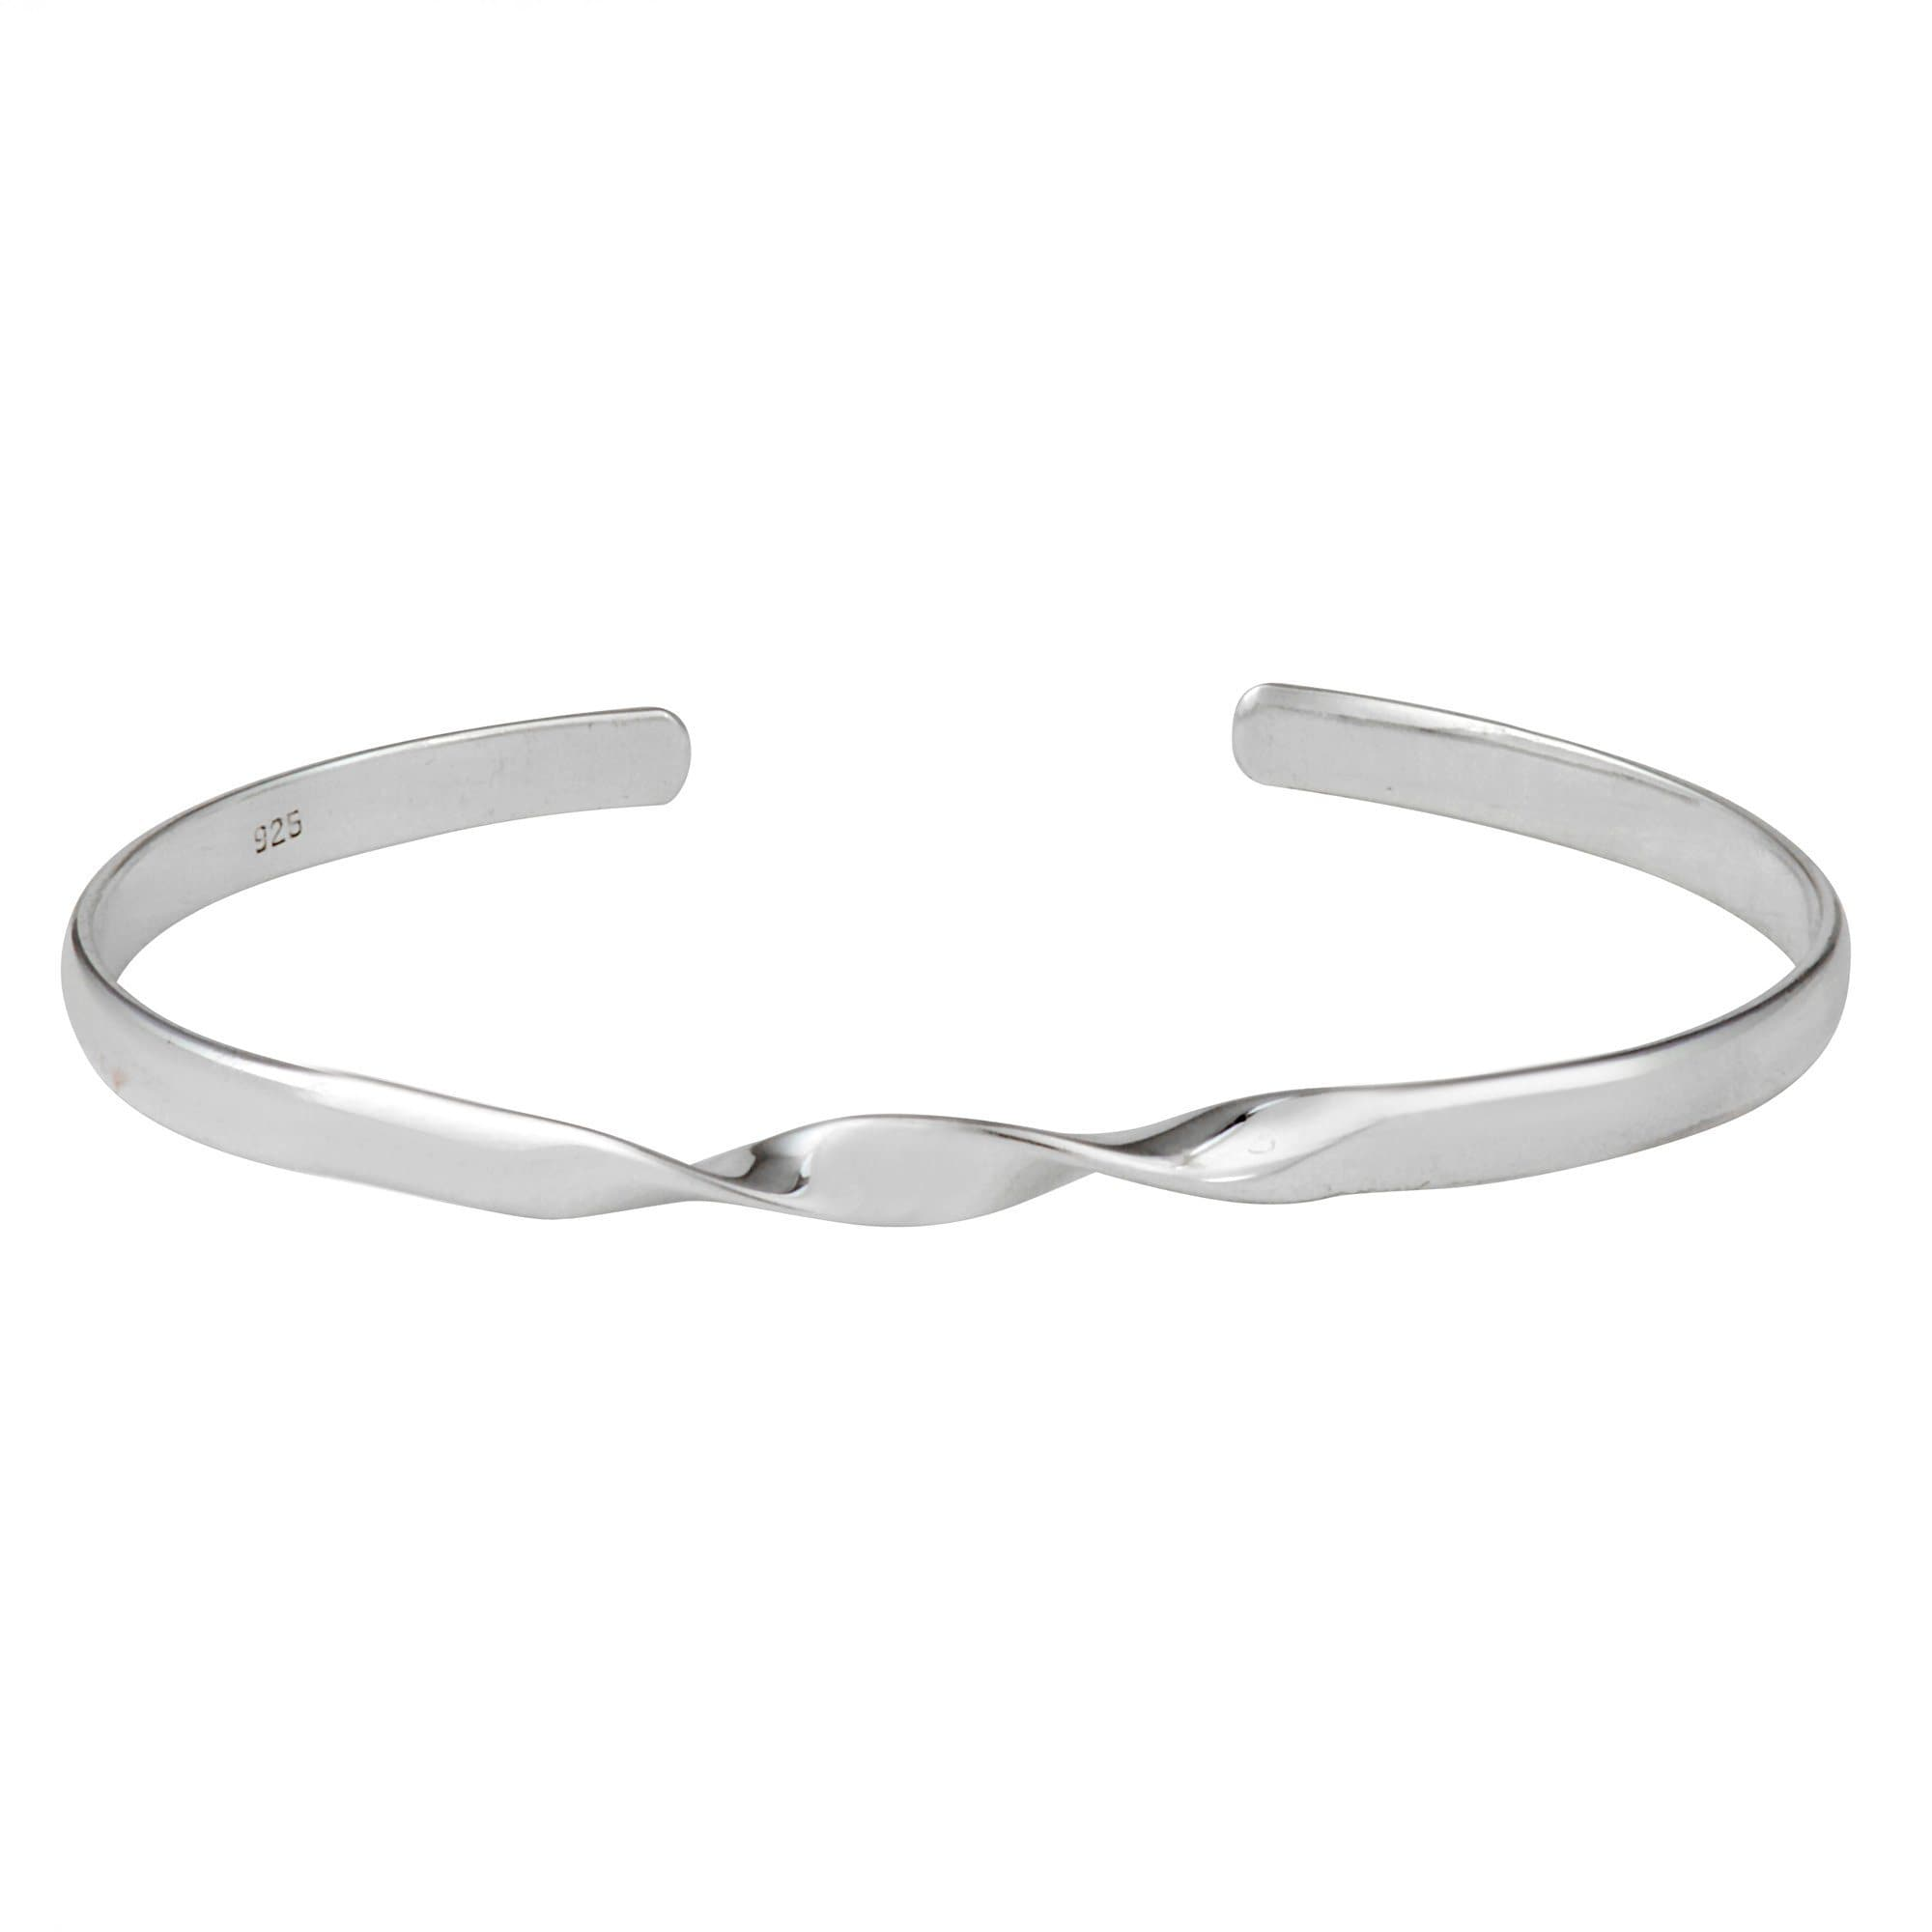 jewelry today watches silver indonesia in womens product moonlight bangle balinese sterling free bangles polish bracelet high design shipping inner circumference